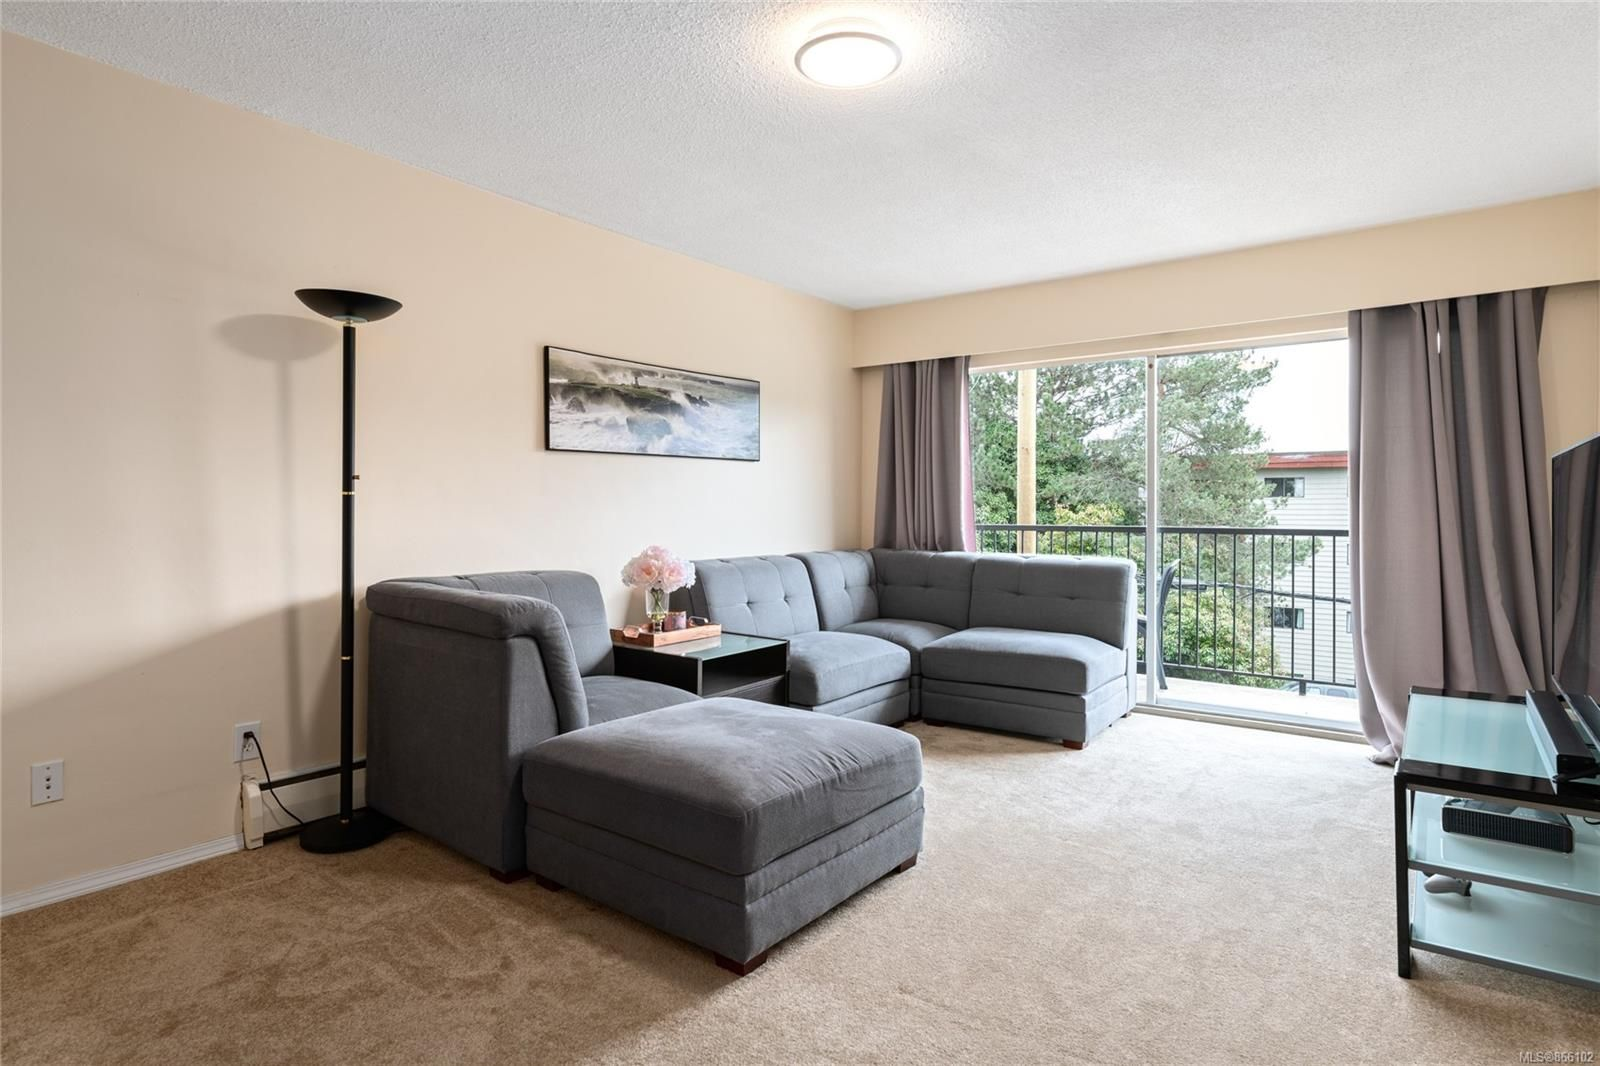 Main Photo: 12 1630 Crescent View Dr in : Na Central Nanaimo Condo for sale (Nanaimo)  : MLS®# 866102